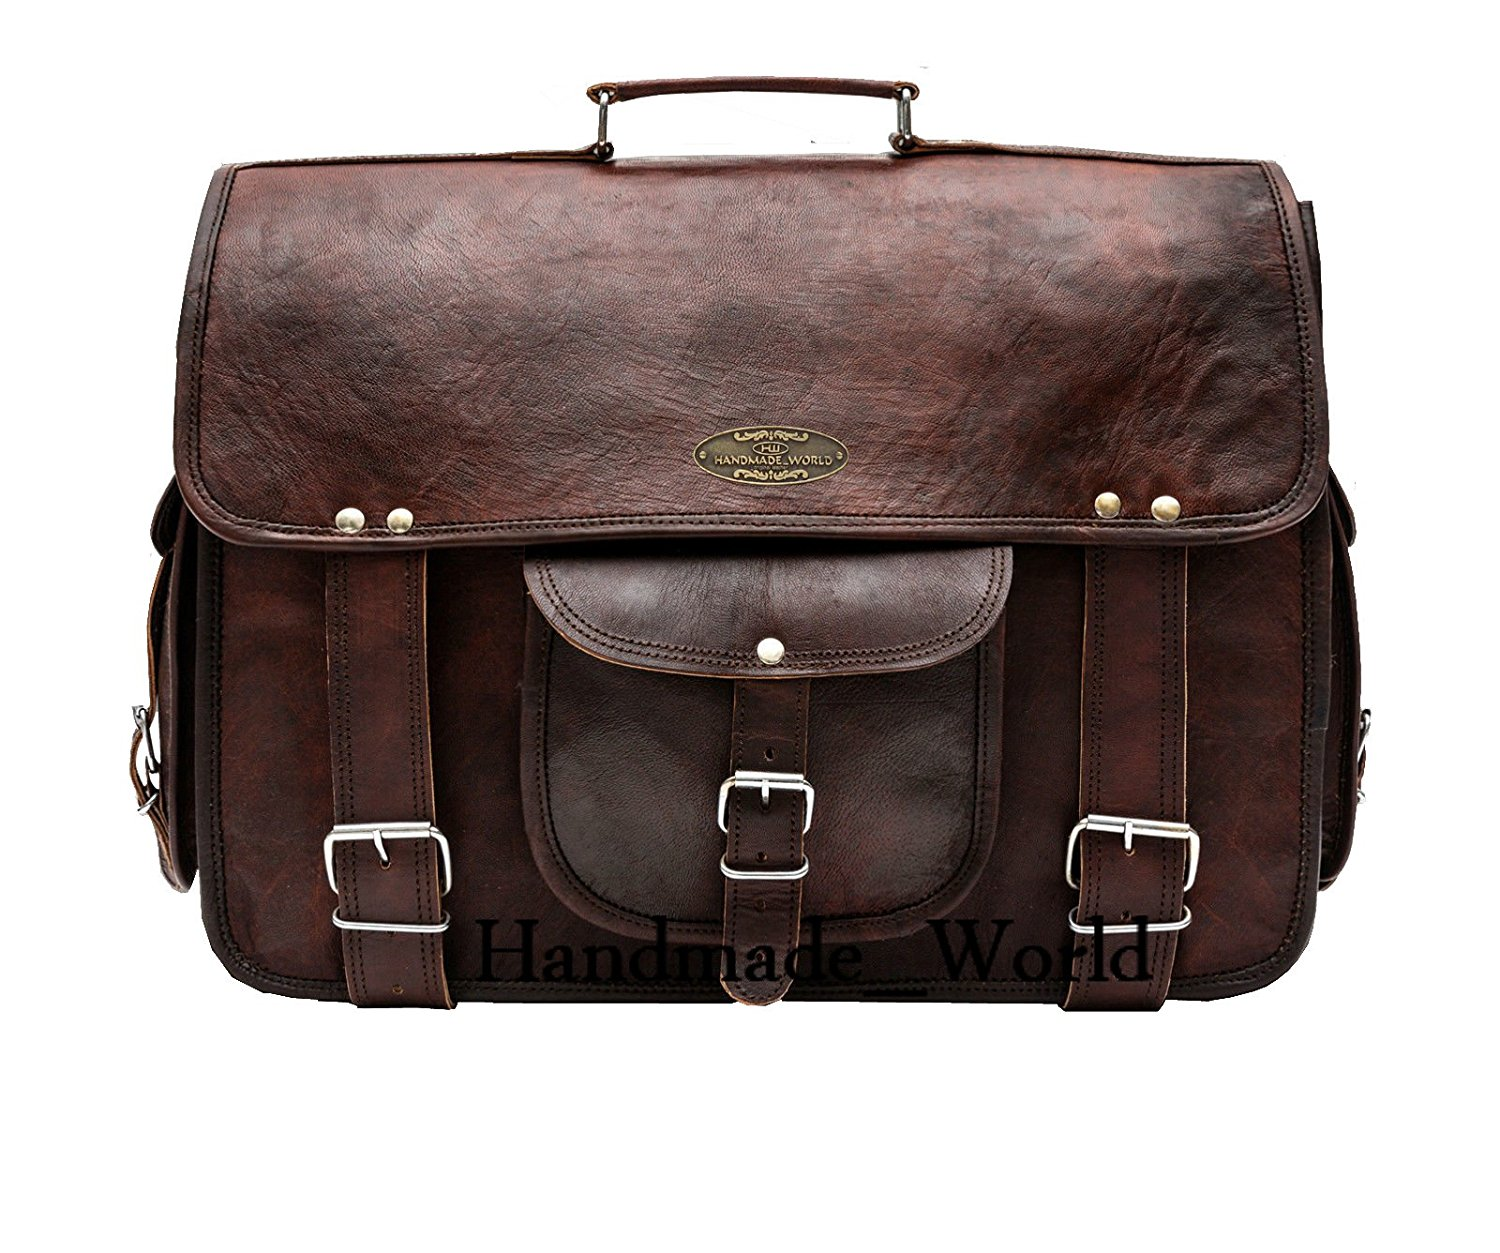 "Handmade_World leather messenger bags for men women 16"" mens briefcase laptop bag best computer shoulder satchel school distressed bag"